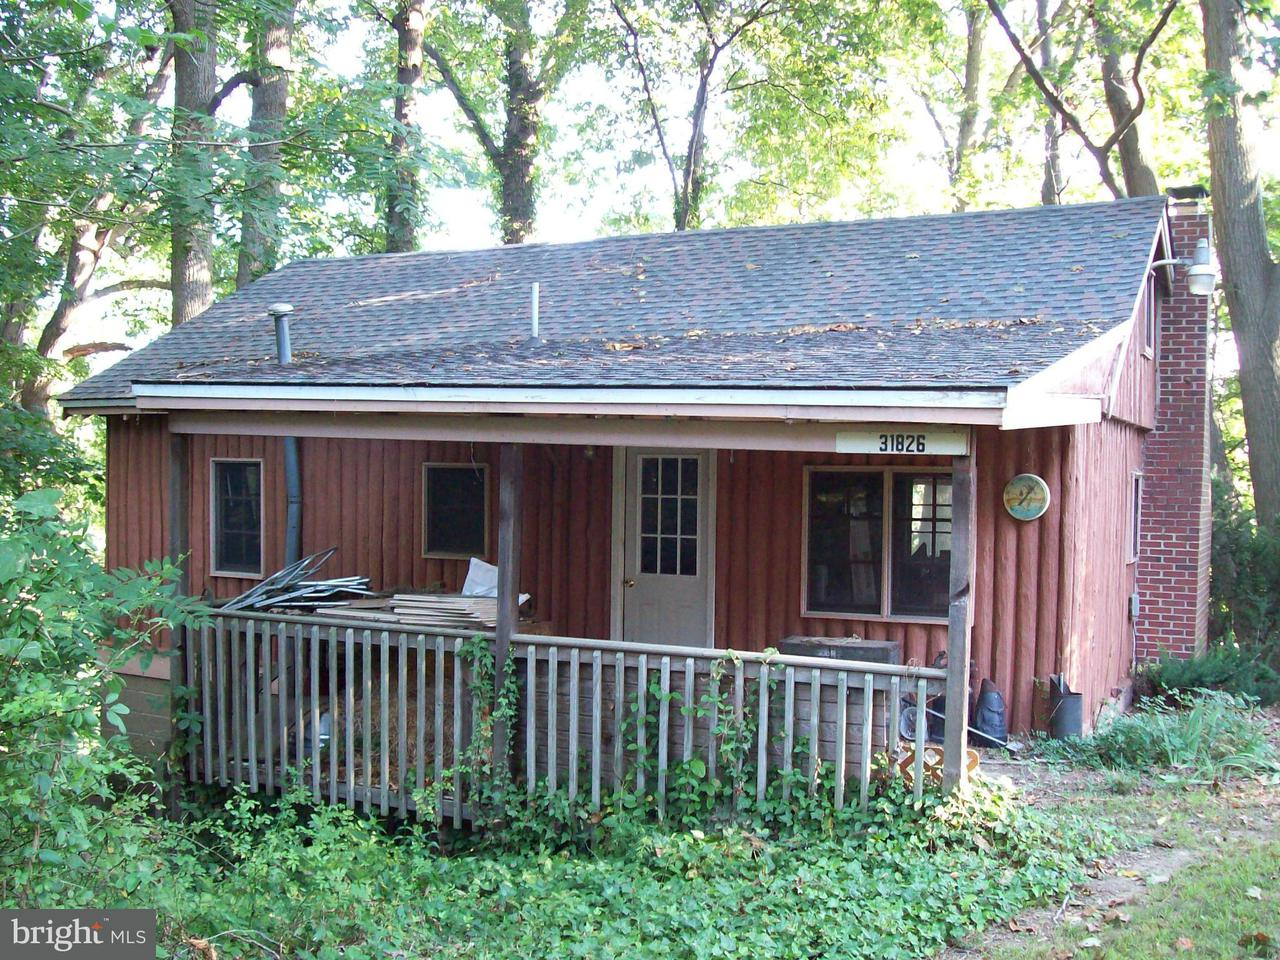 Additional photo for property listing at 31826 Glen Rd  Galena, Maryland 21635 United States